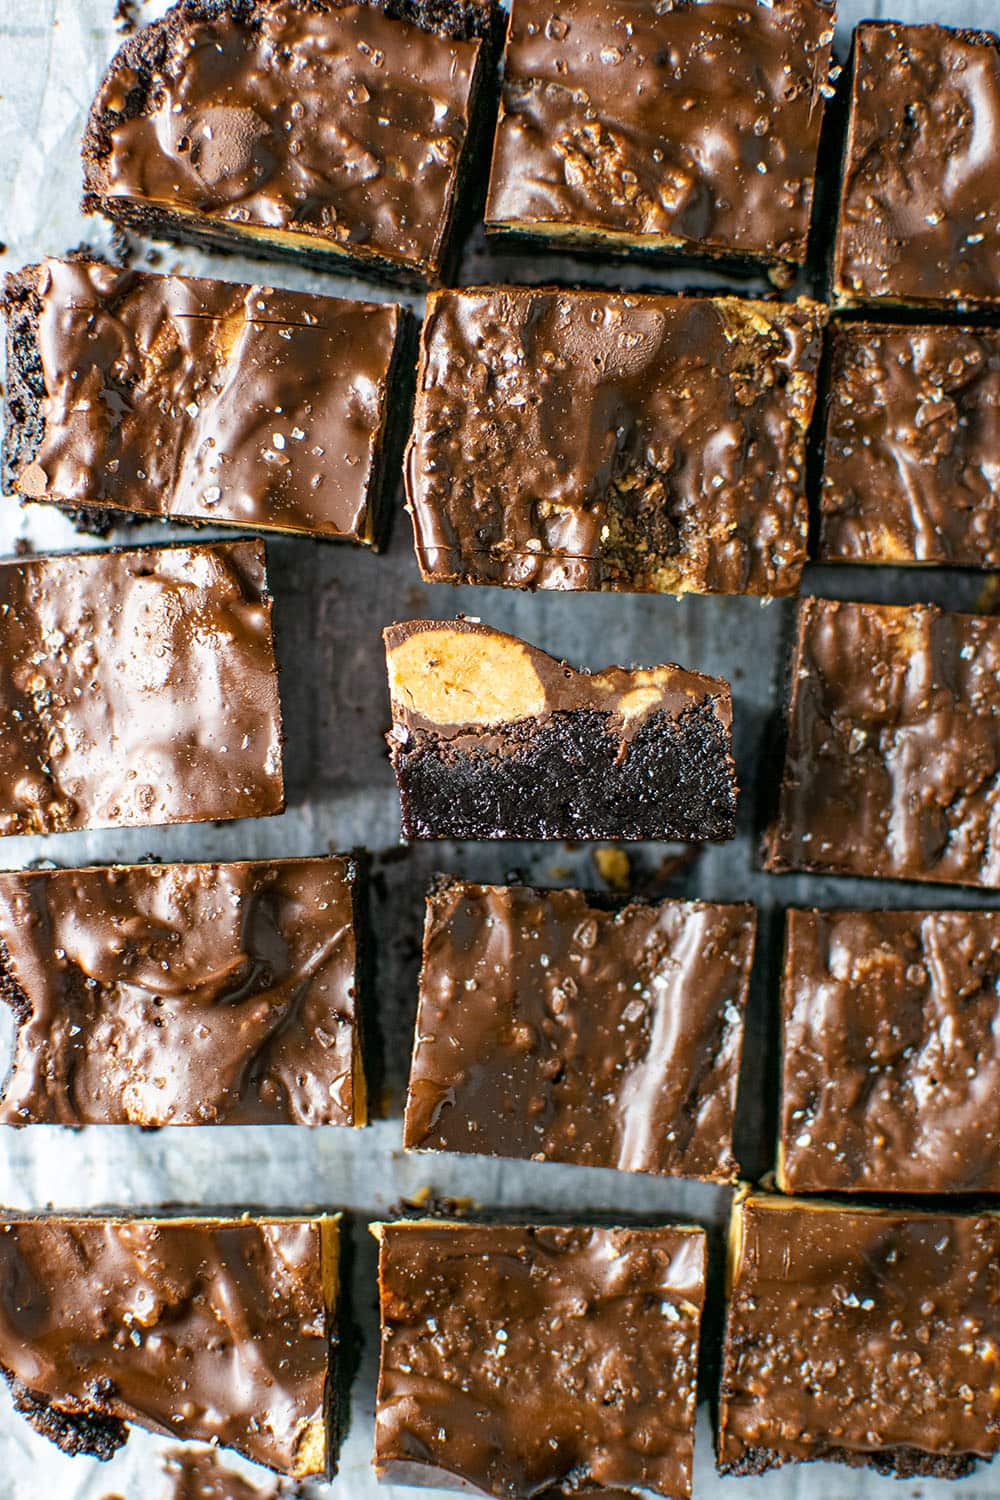 Reese's Peanut Butter Cup Crack Brownies Recipe